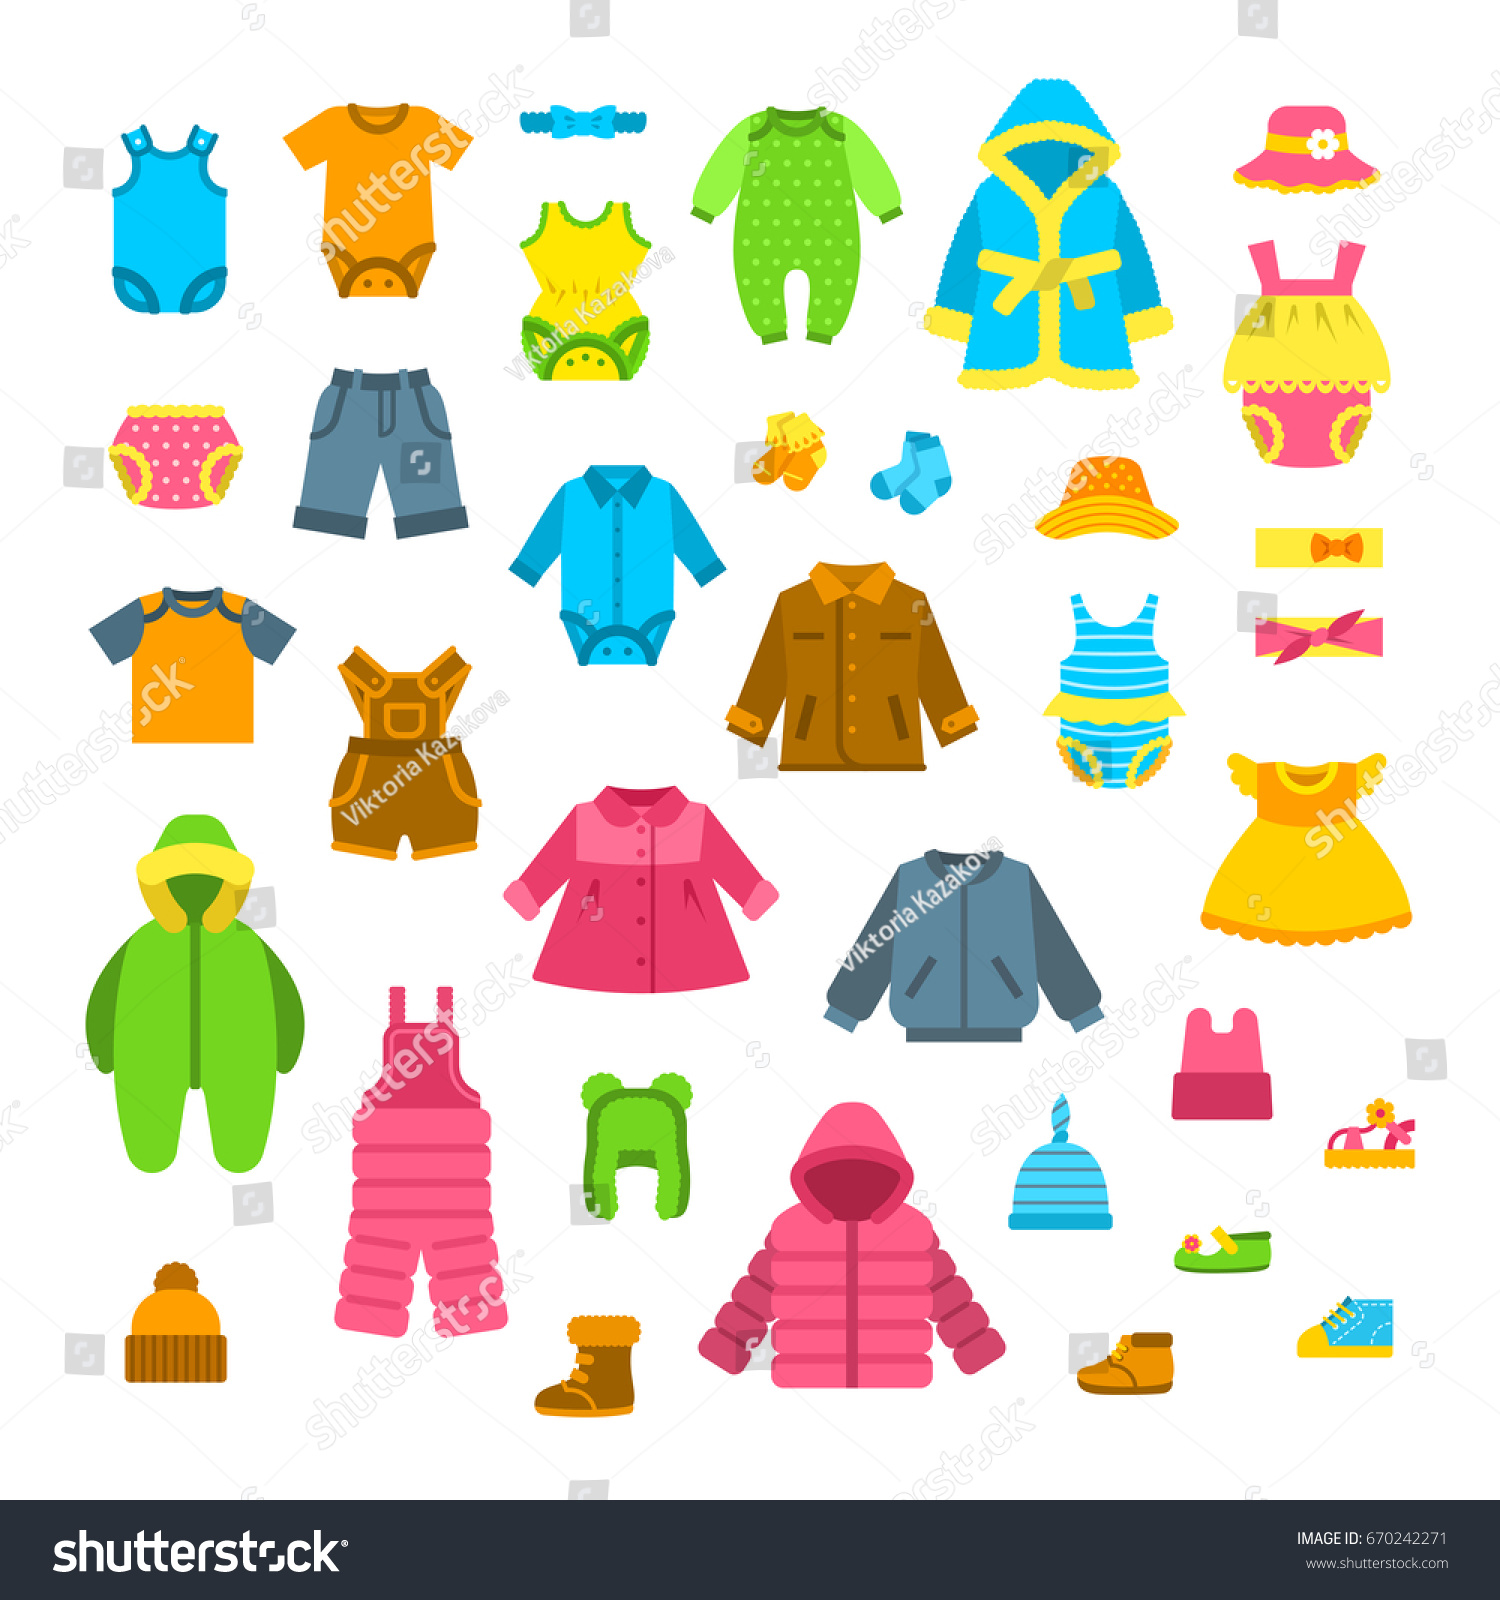 Baby Clothes Vector Illustrations Set Newborn Stock Vector ...